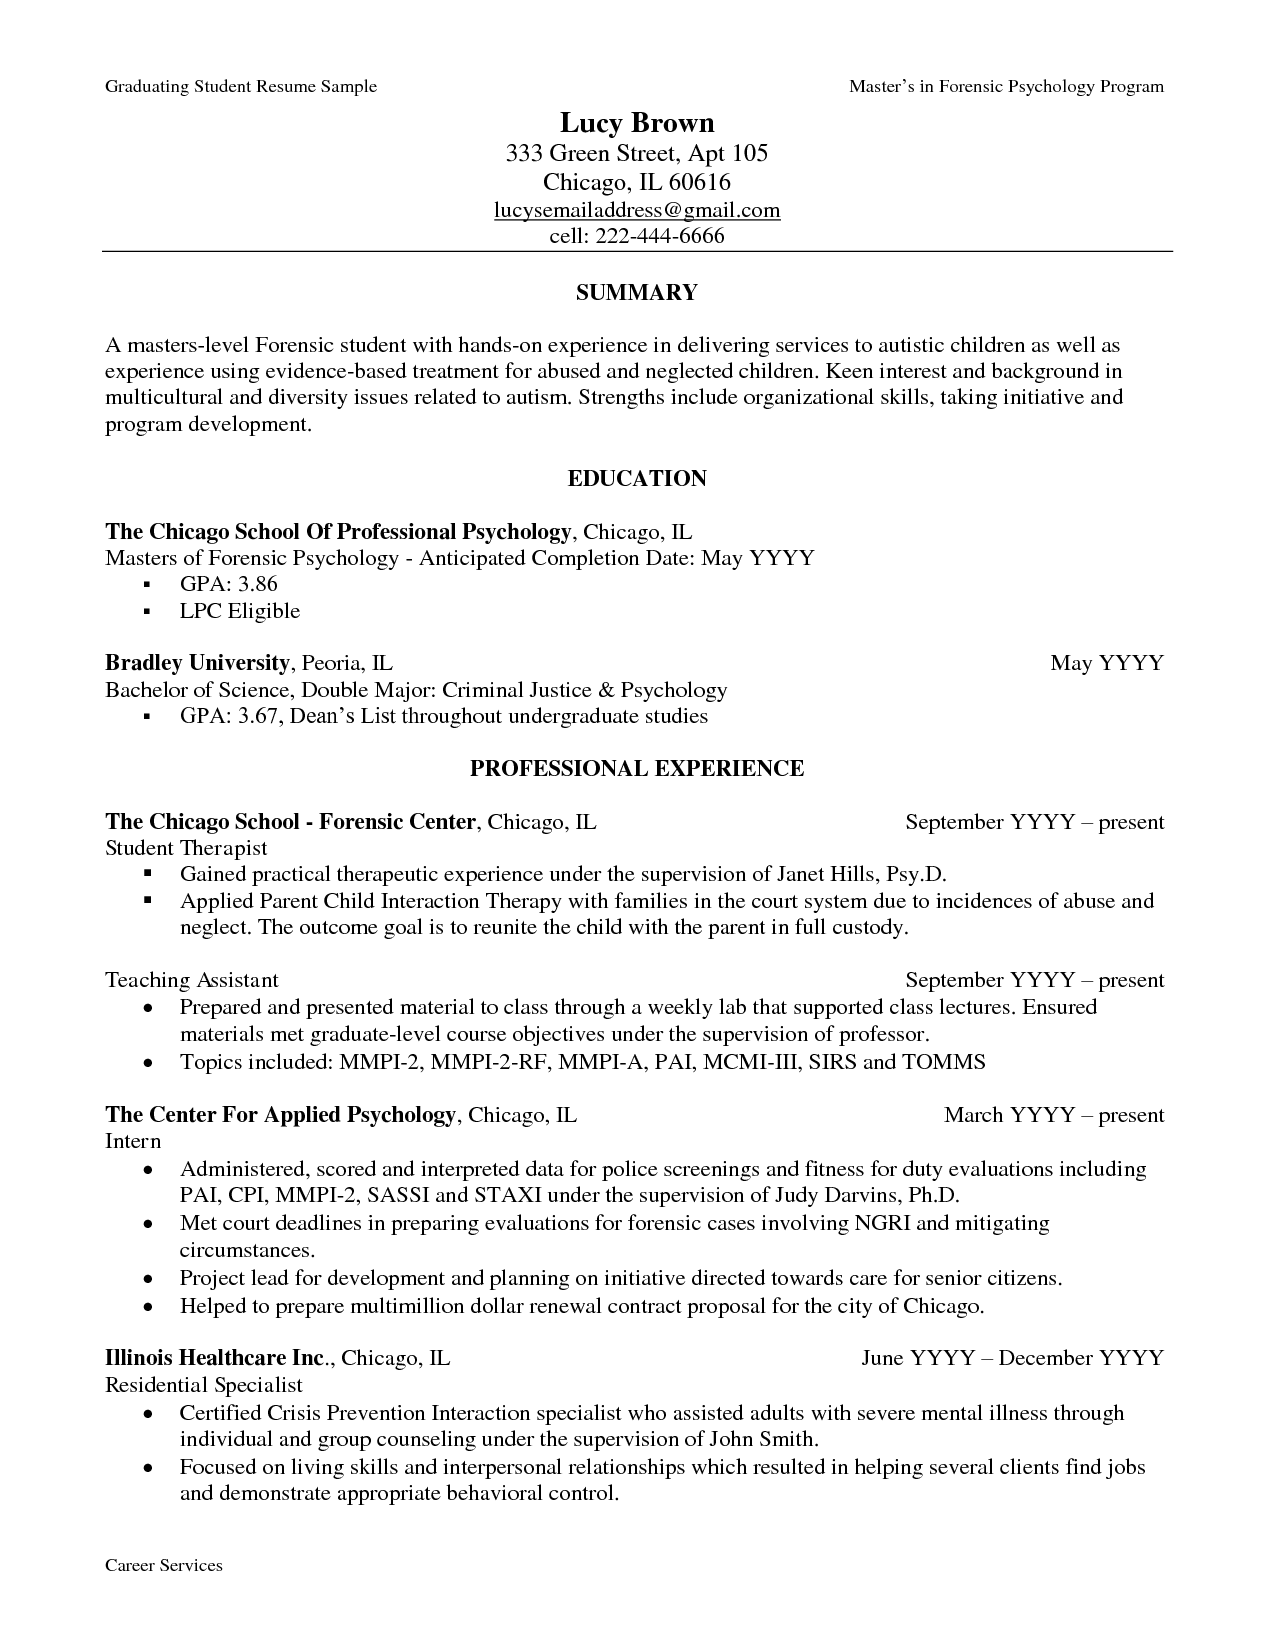 Sample Resume For Psychology Graduate resumecareer – Resume Example for College Graduate